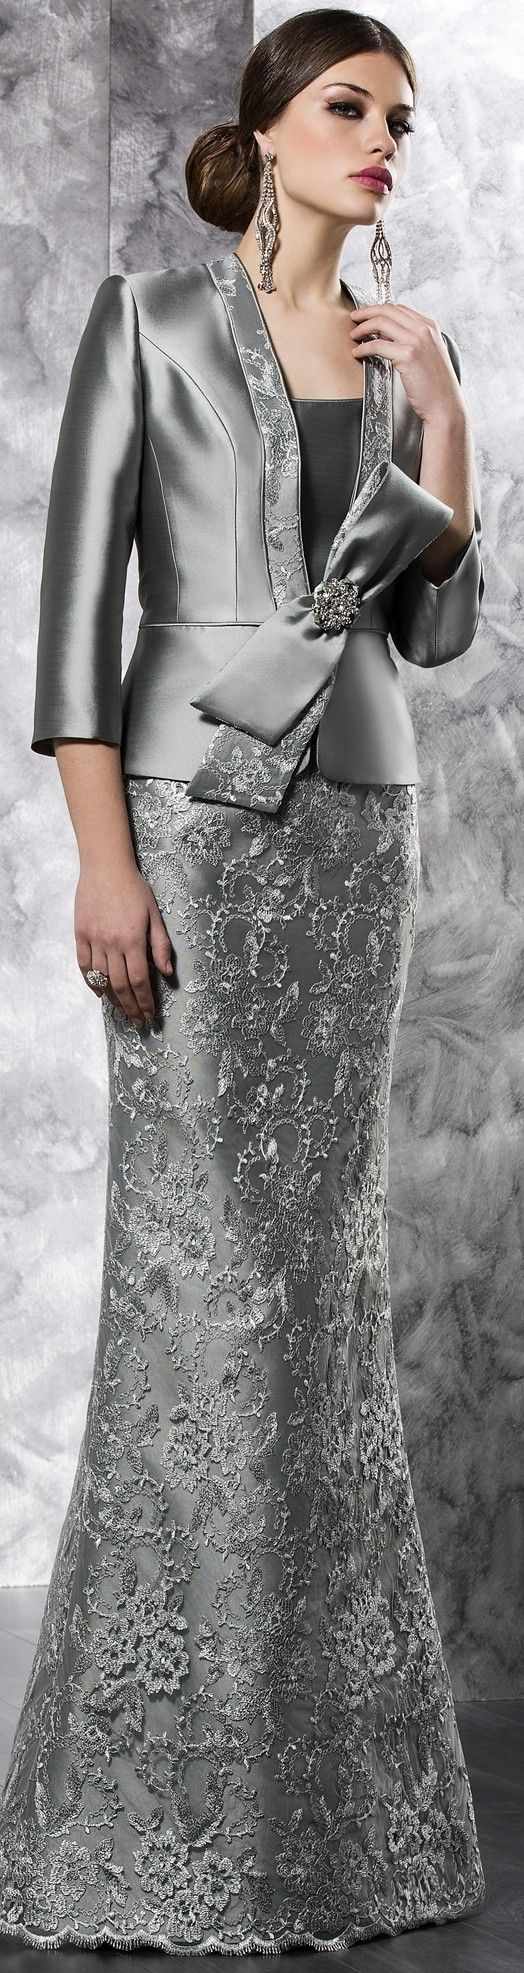 Grey mother of the bride evening dresses can have beaded lace skirts. This design shows a beautiful satin jacket with 3/4 length sleeves. We can produce custom mother of the bride evening gowns similar to this haute couture piece but for an affordable price. Get pricing on any #motherofthebride dress design in a picture at www.dariuscordell.com